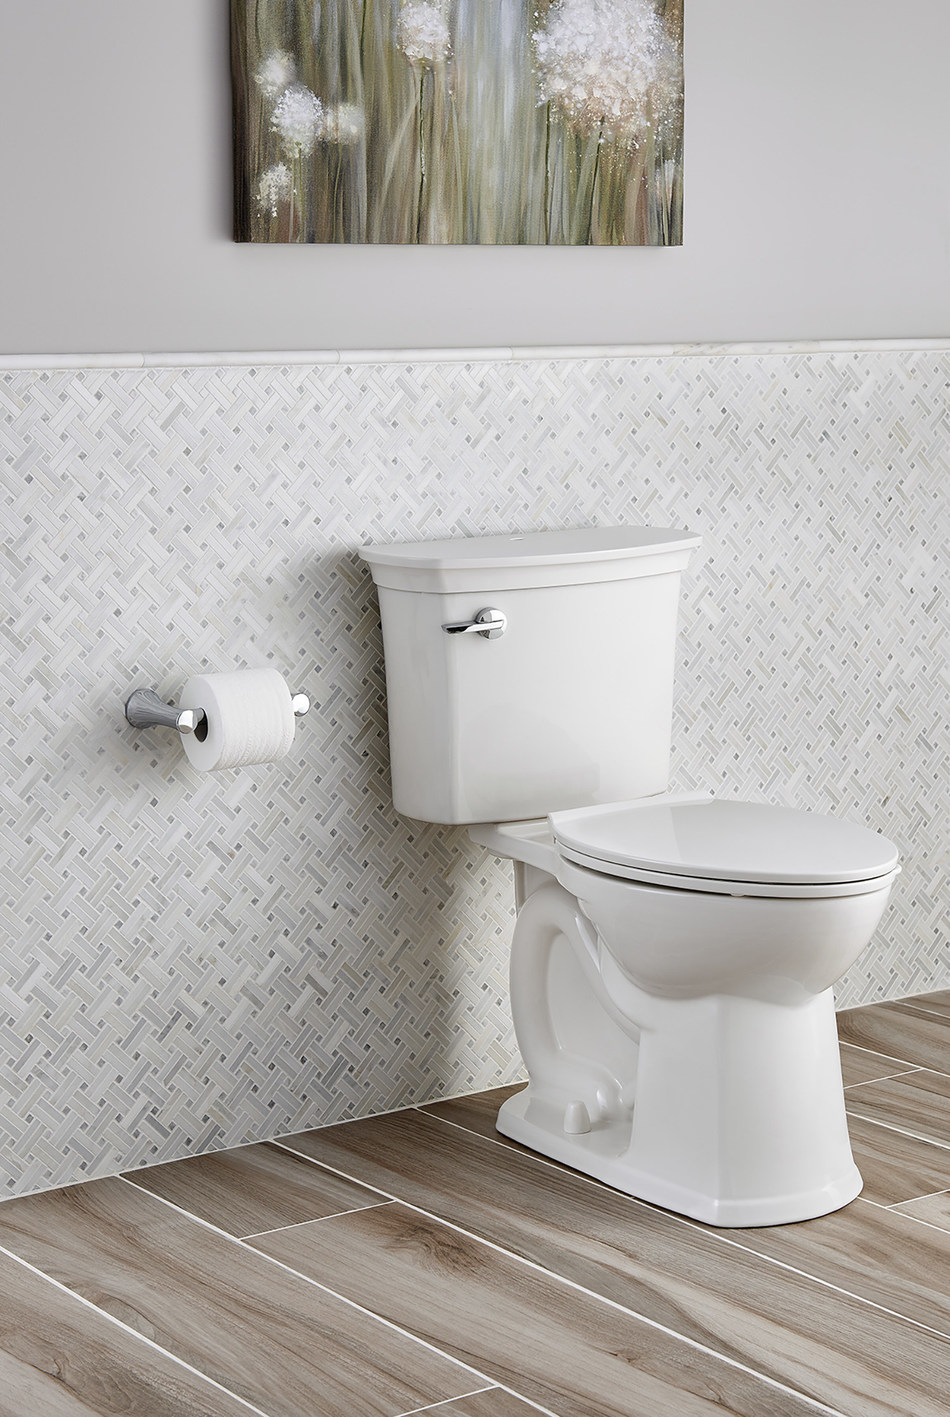 Revolutionary Acticlean Toilet From American Standard